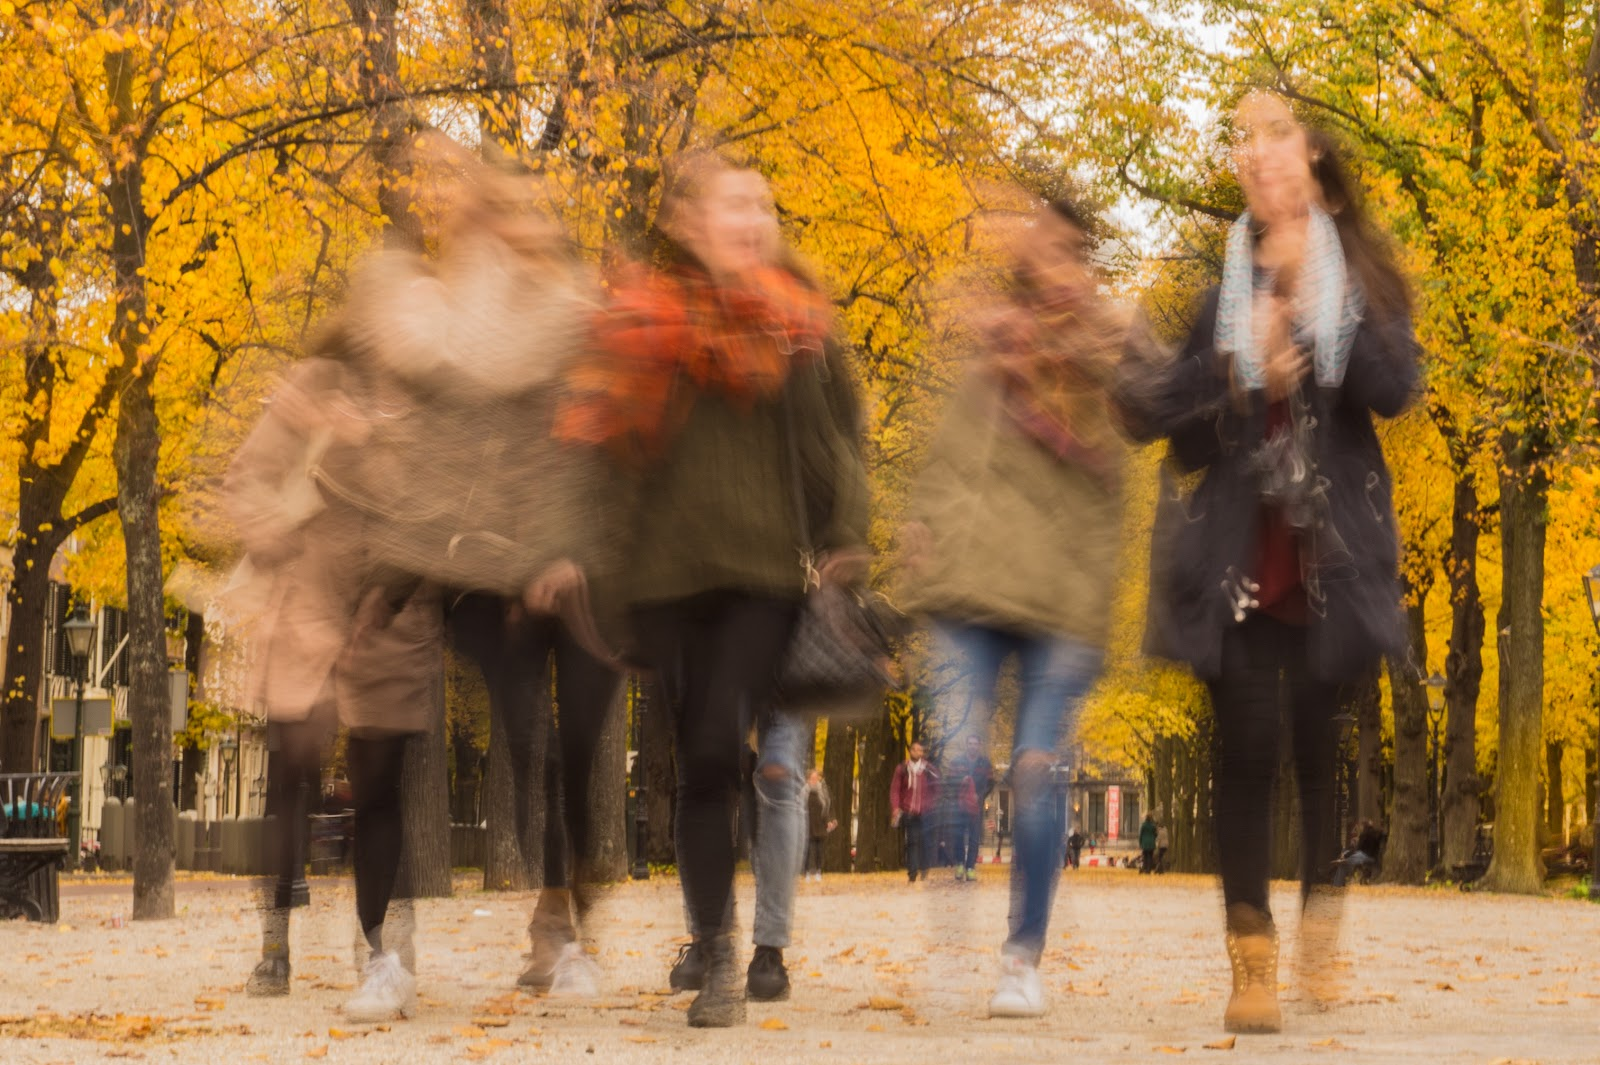 group of women in a park blurred